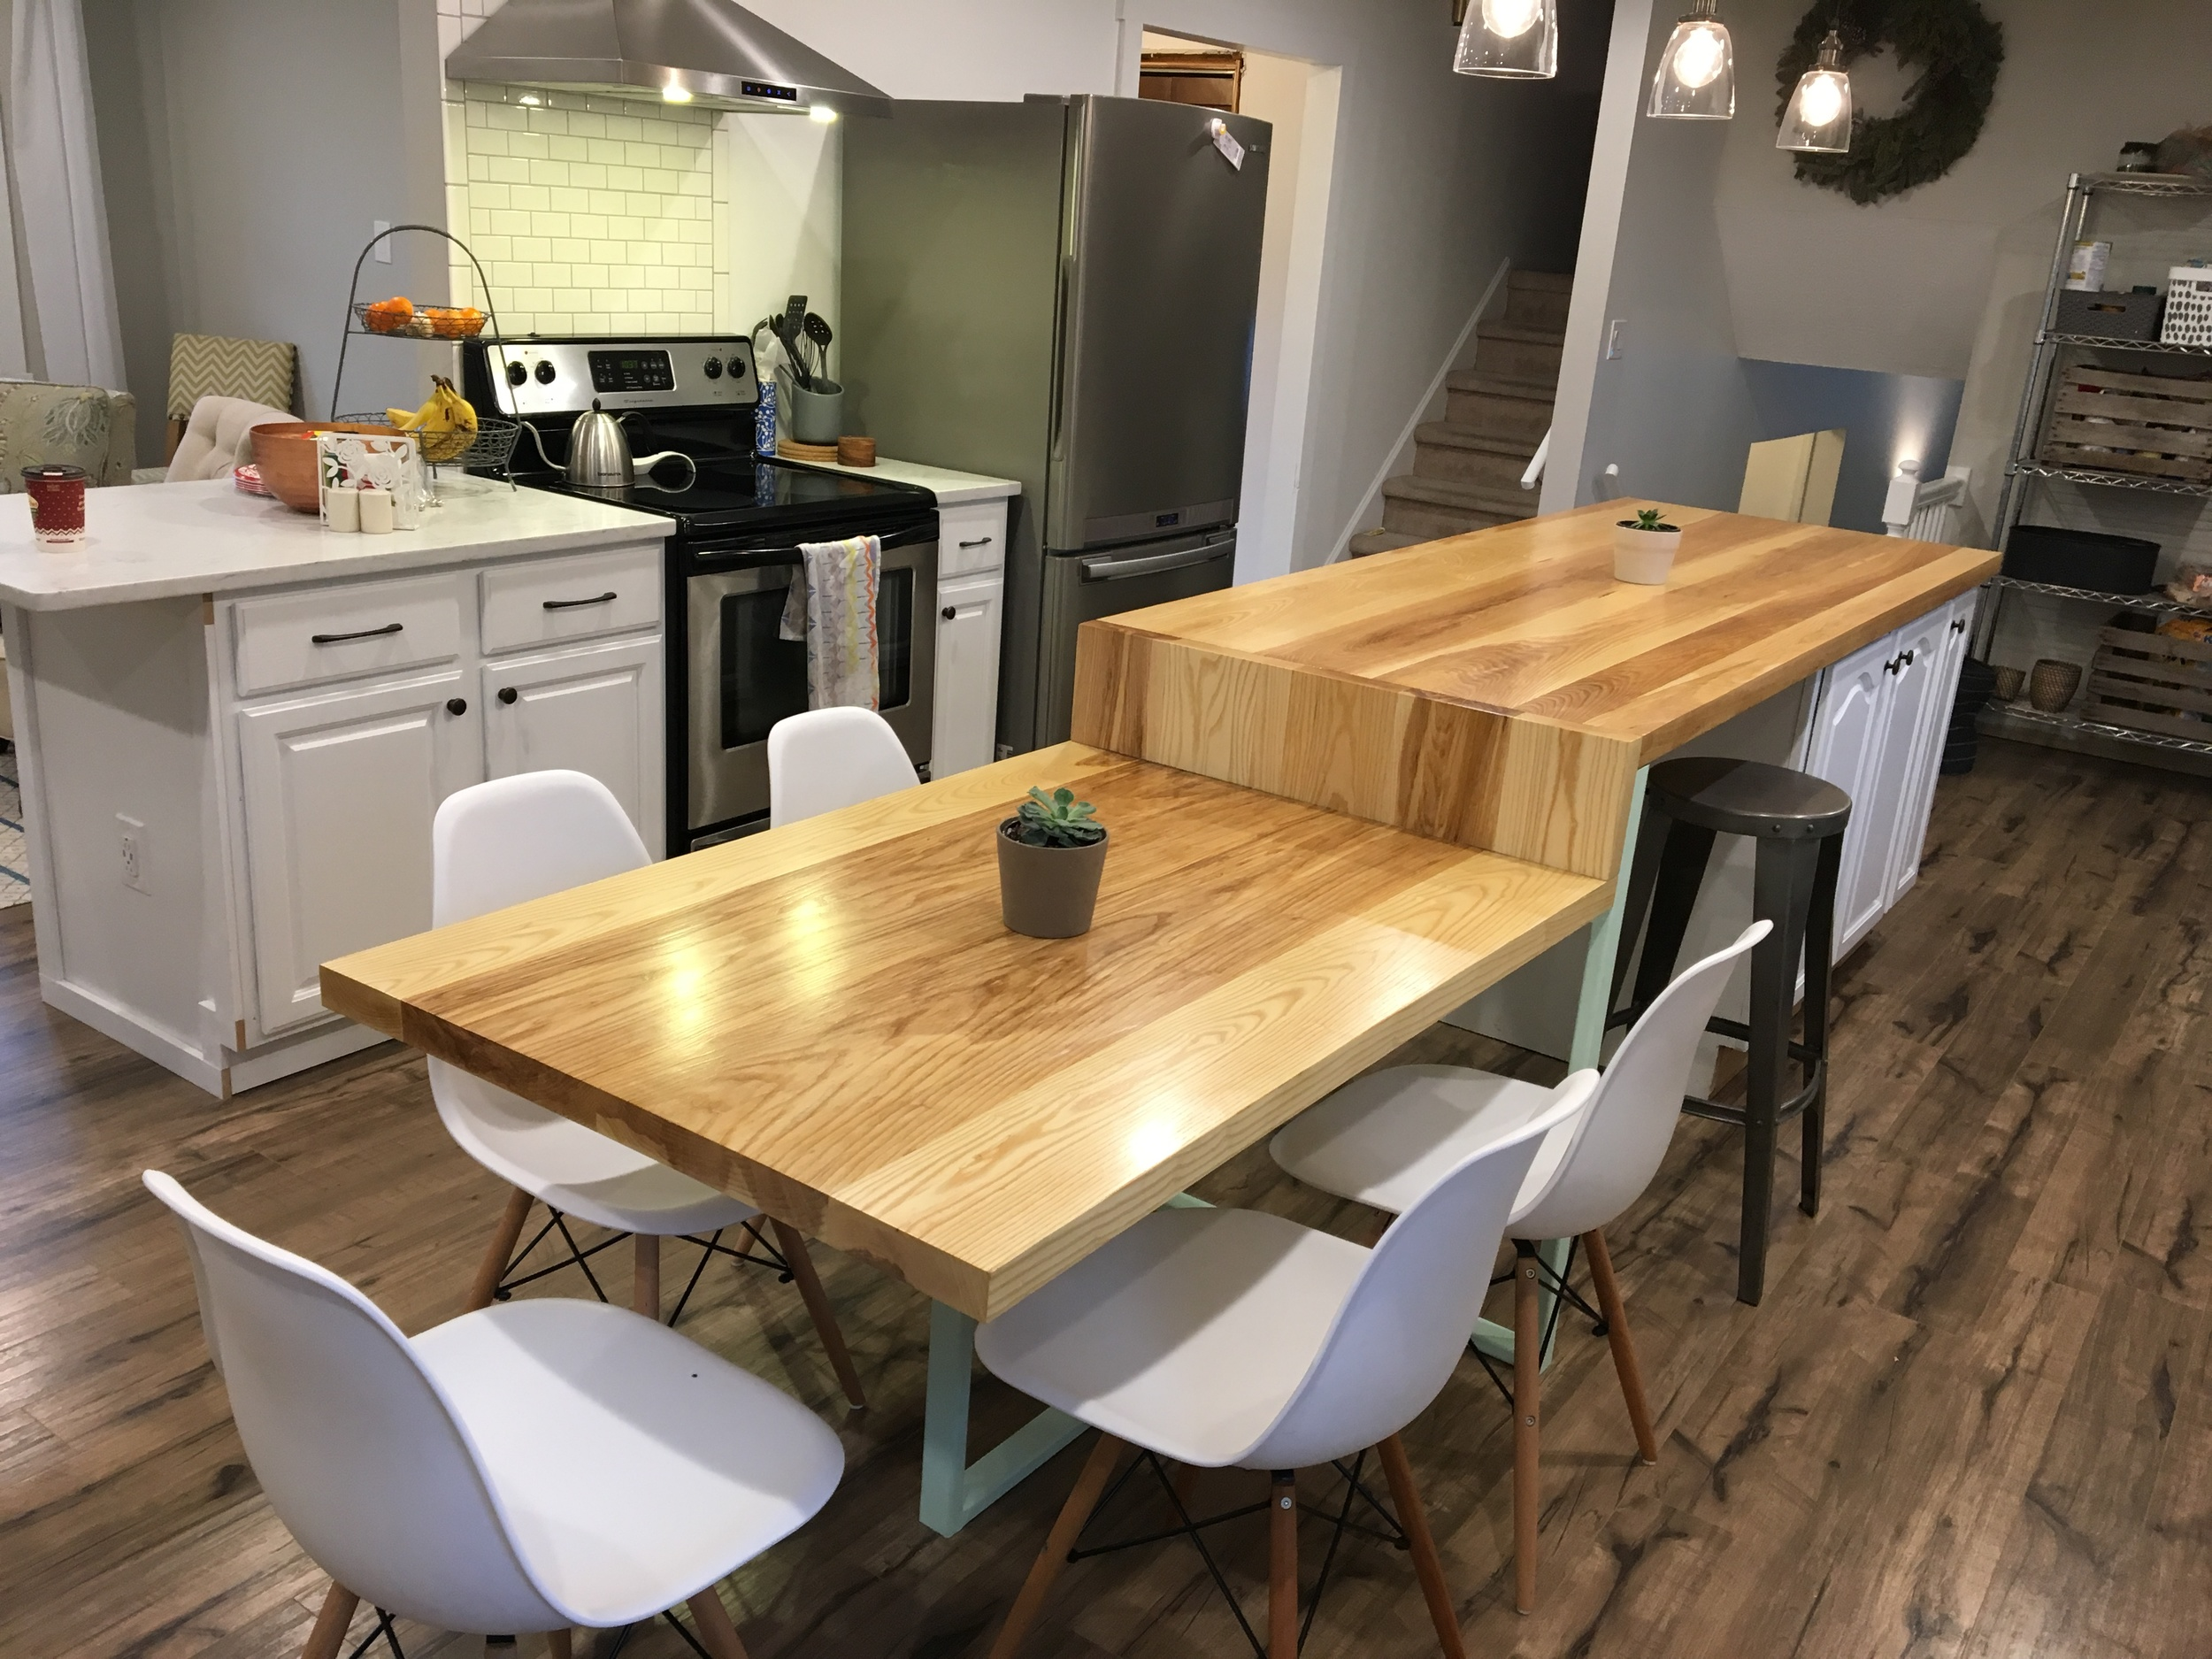 Ash kitchen island/table with custom designed metal legs